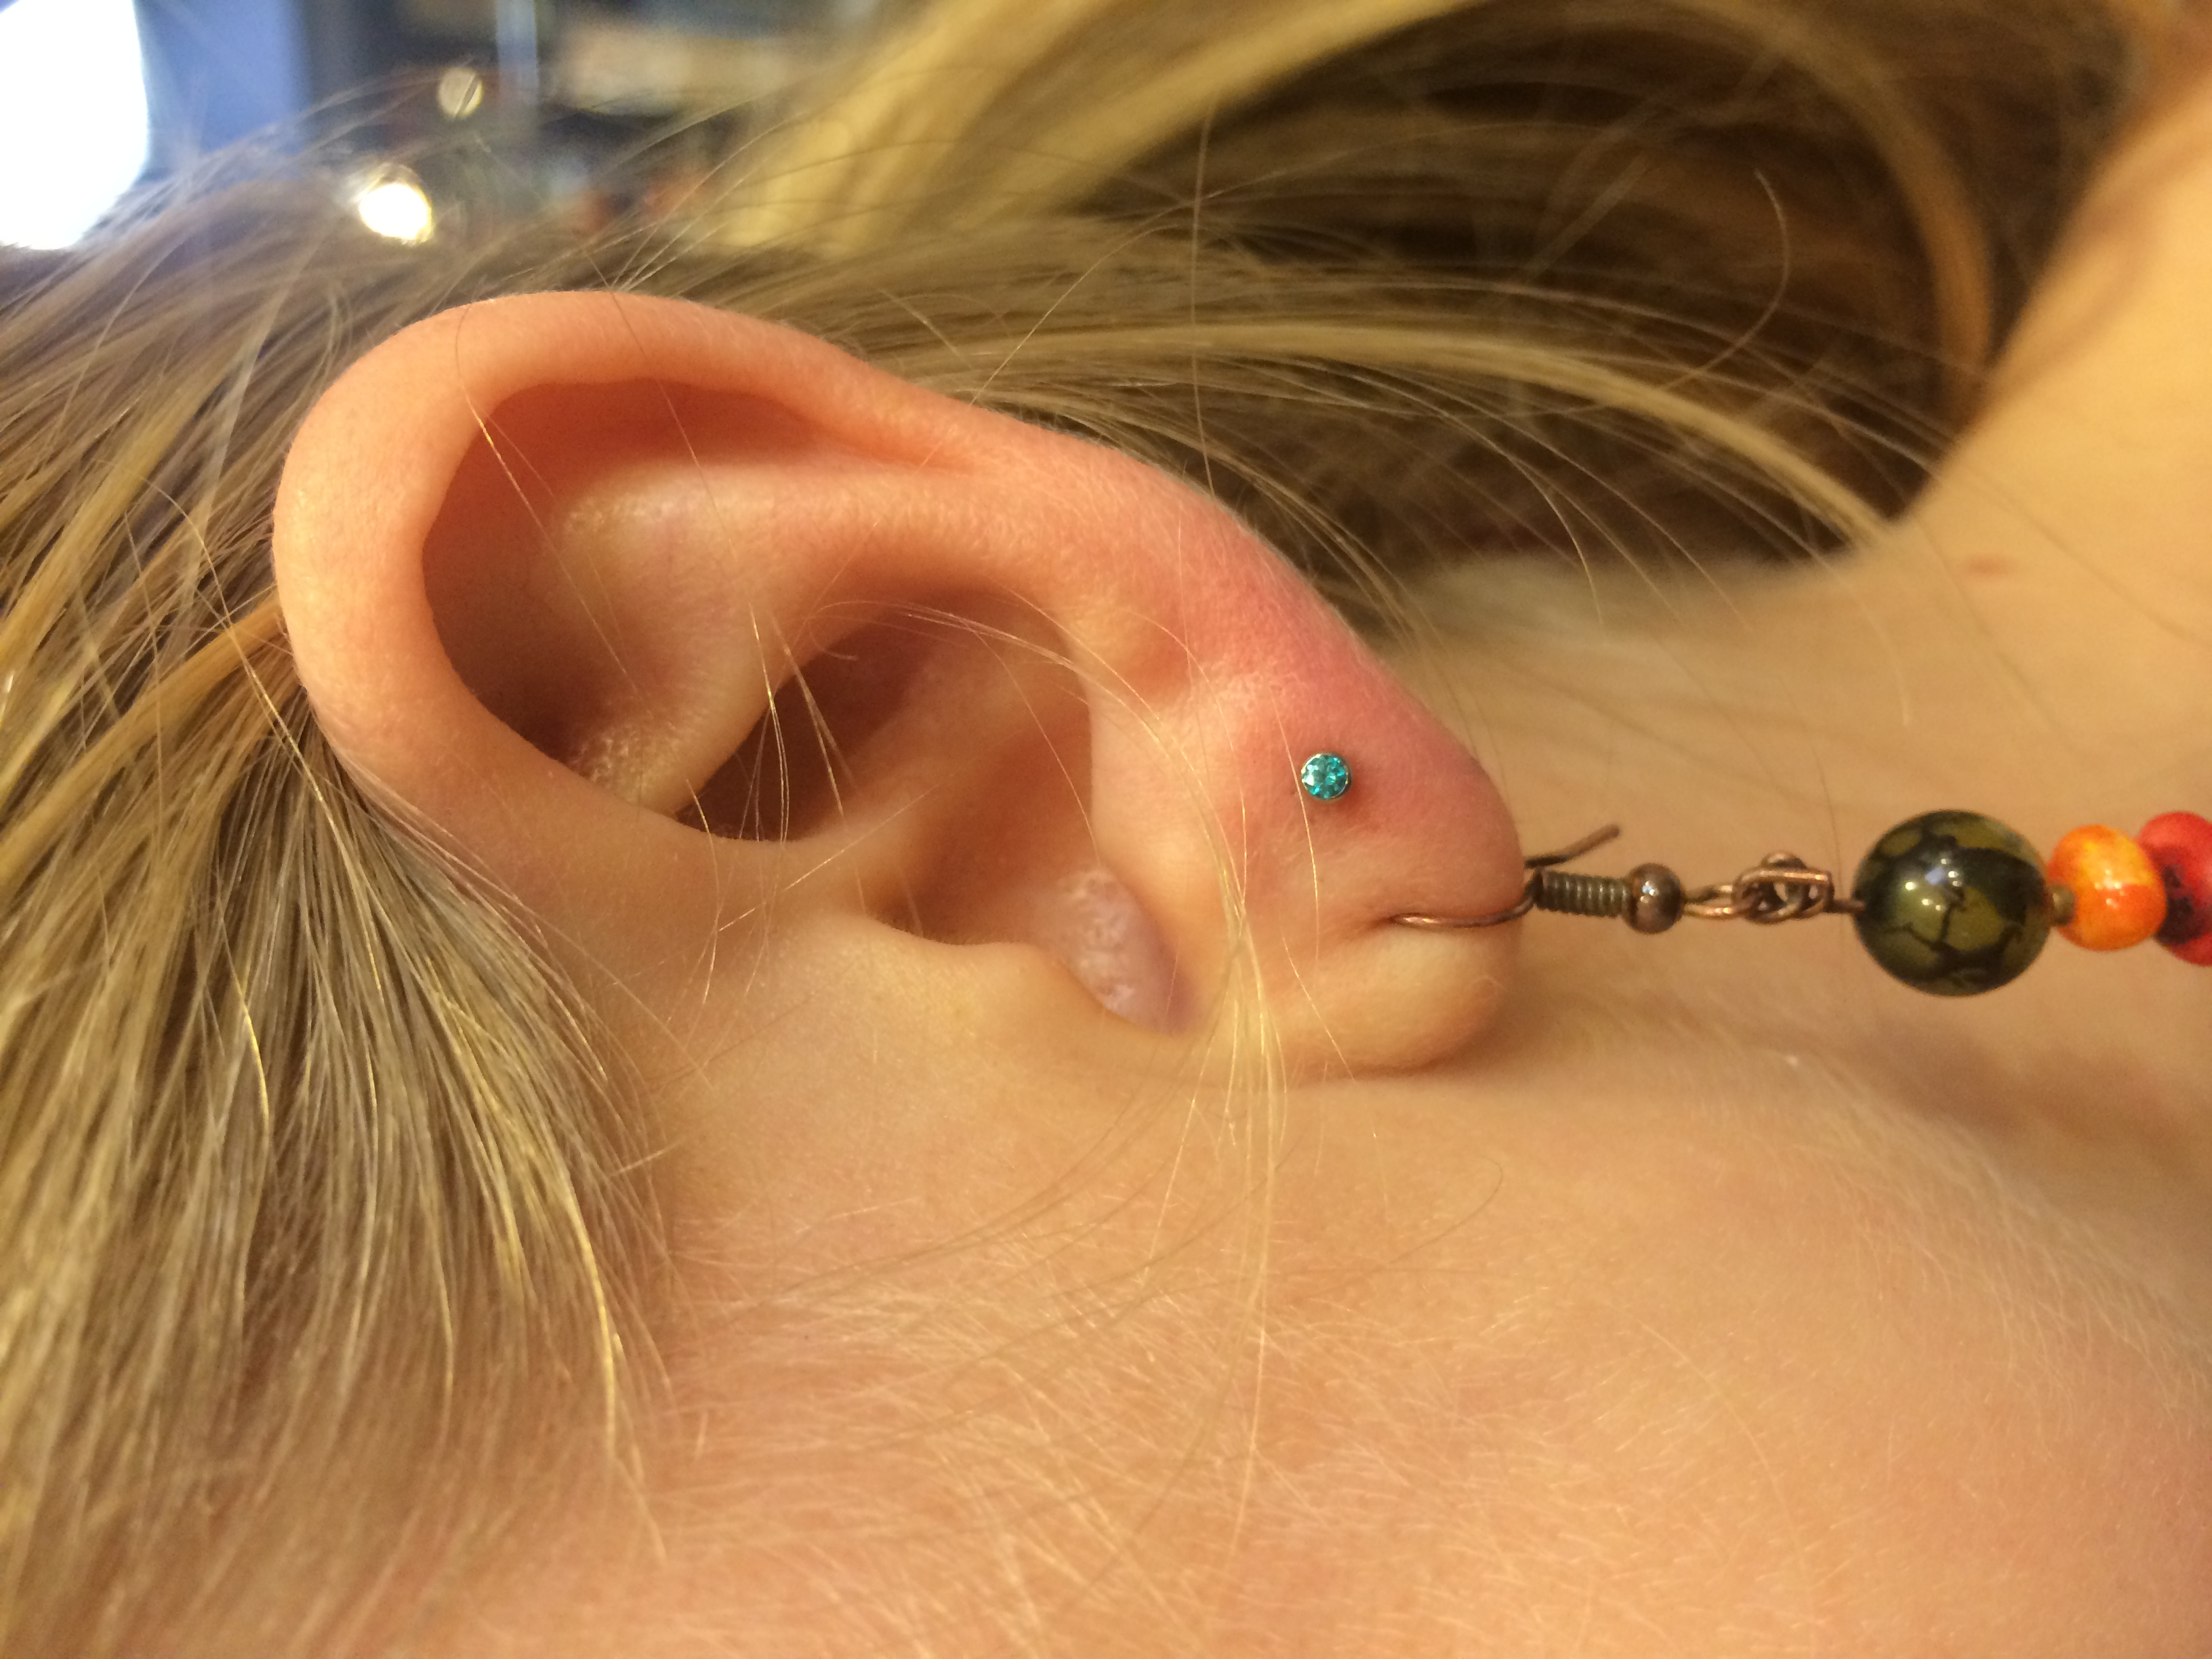 ear lobe, ear piercing, jewelry